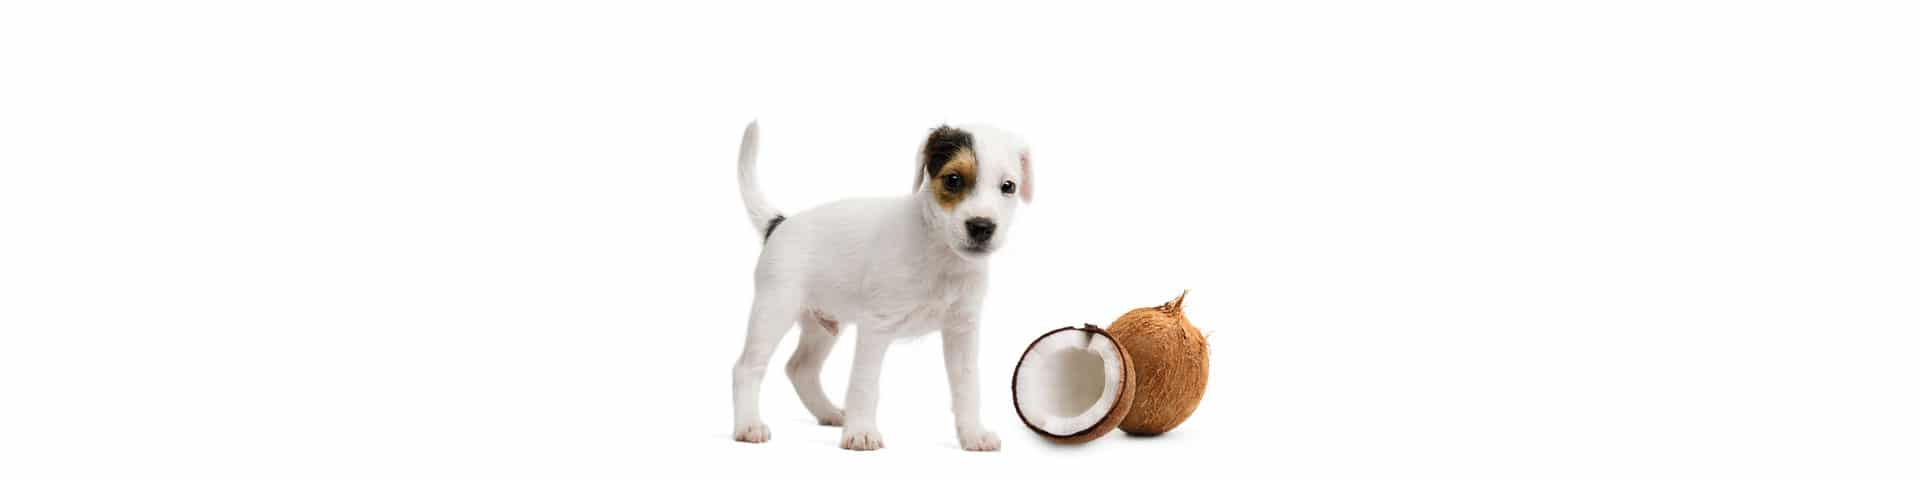 dog and coconut